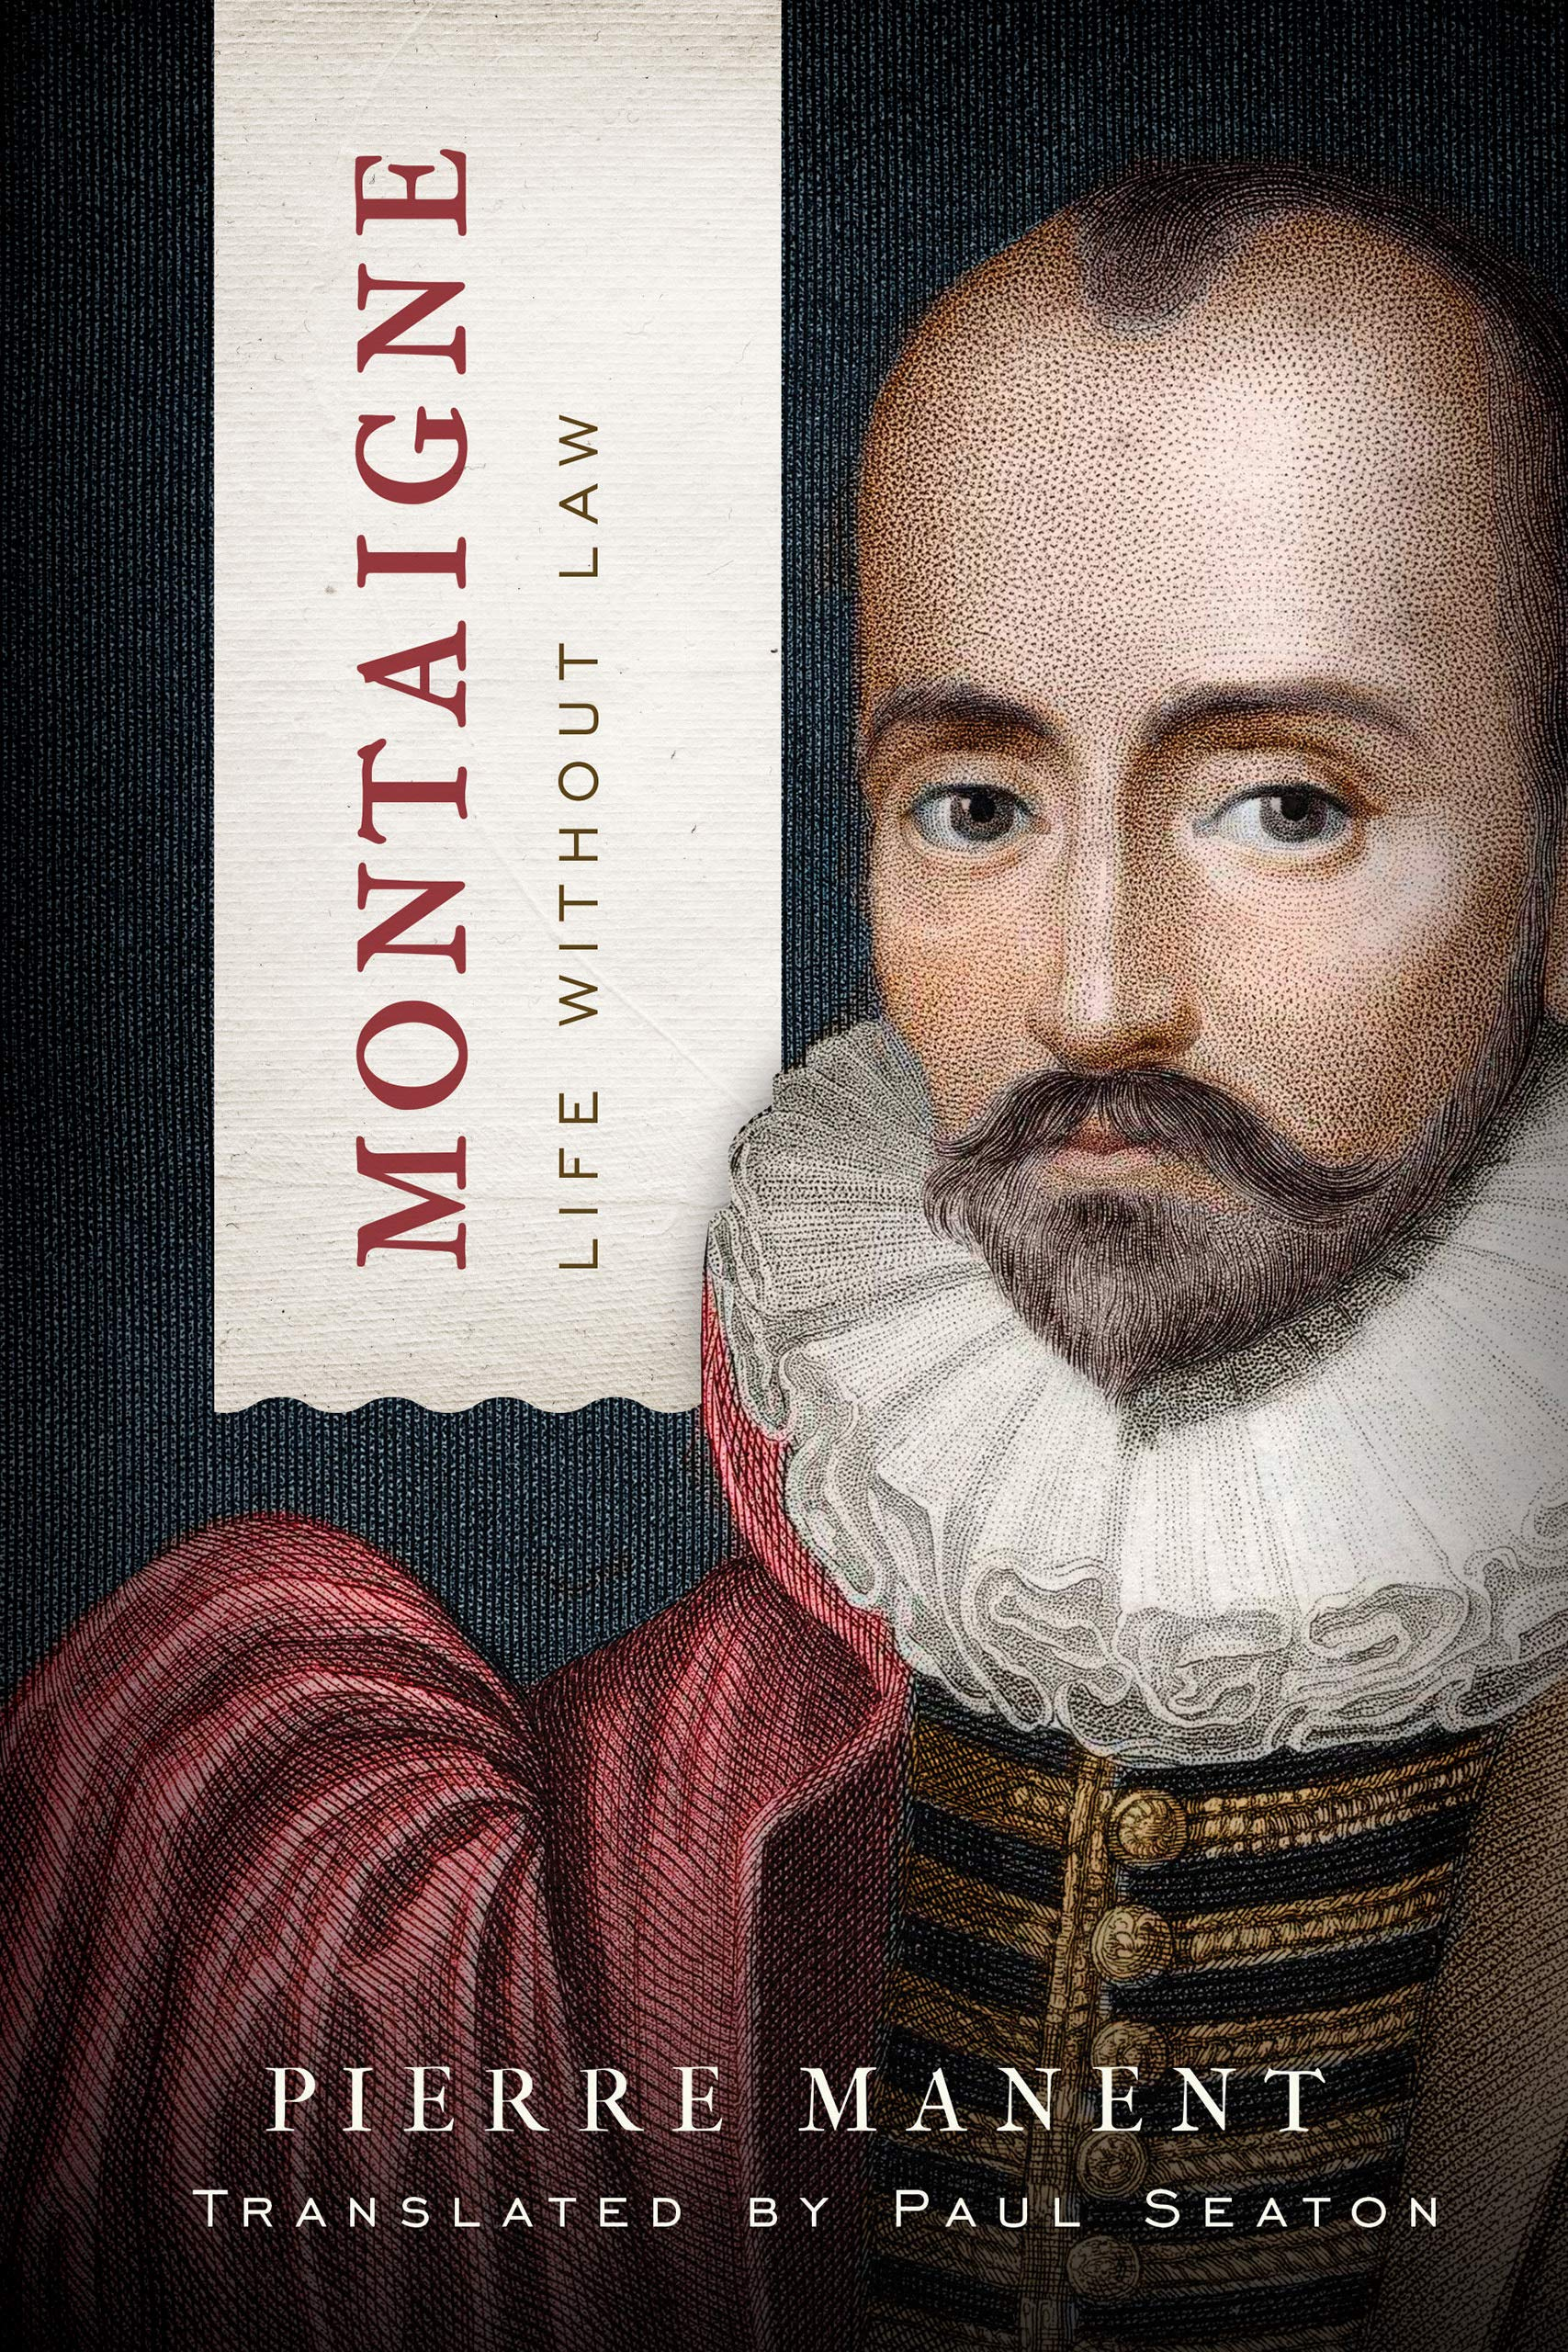 Montaigne Life Without Law Catholic Ideas For A Secular World Manent Pierre Seaton Paul 9780268107819 Amazon Com Books